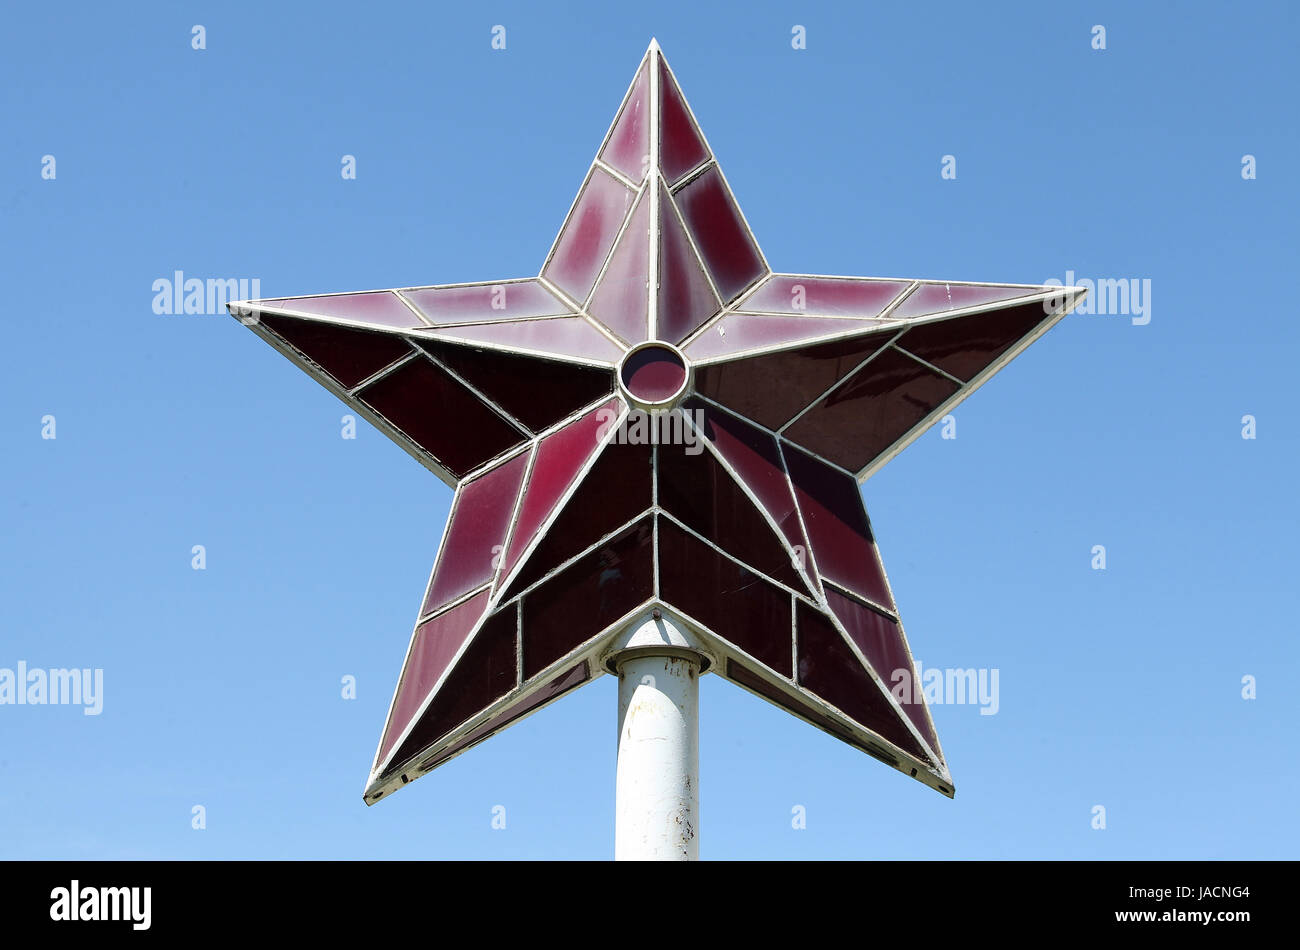 Red Star originally from the Party House and now at the Museum of Socialist Art in Sofia - Stock Image